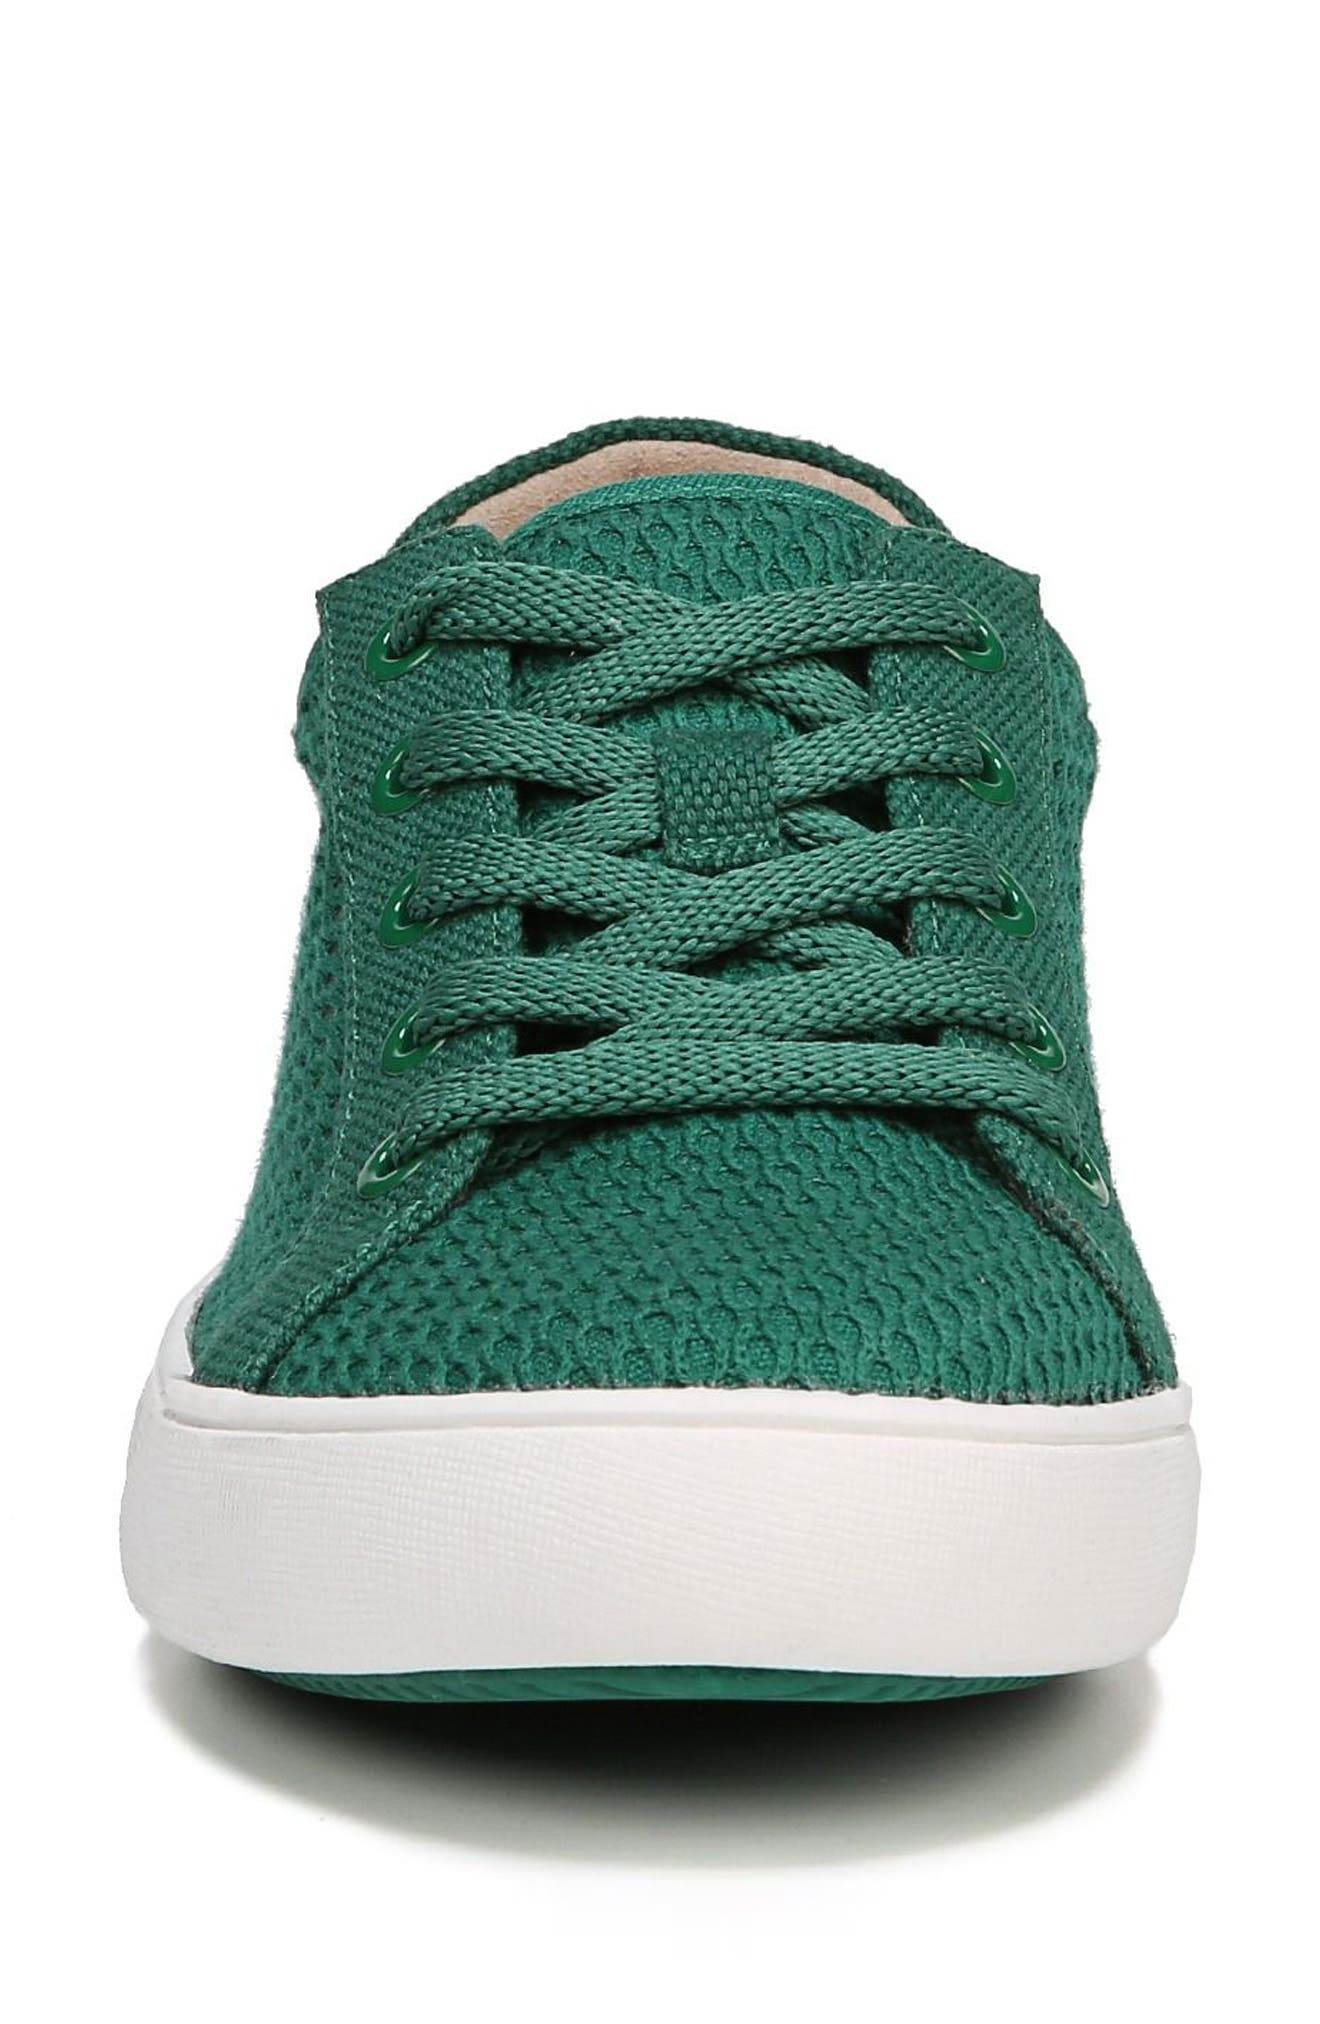 Morrison III Perforated Sneaker,                             Alternate thumbnail 4, color,                             Green Leather